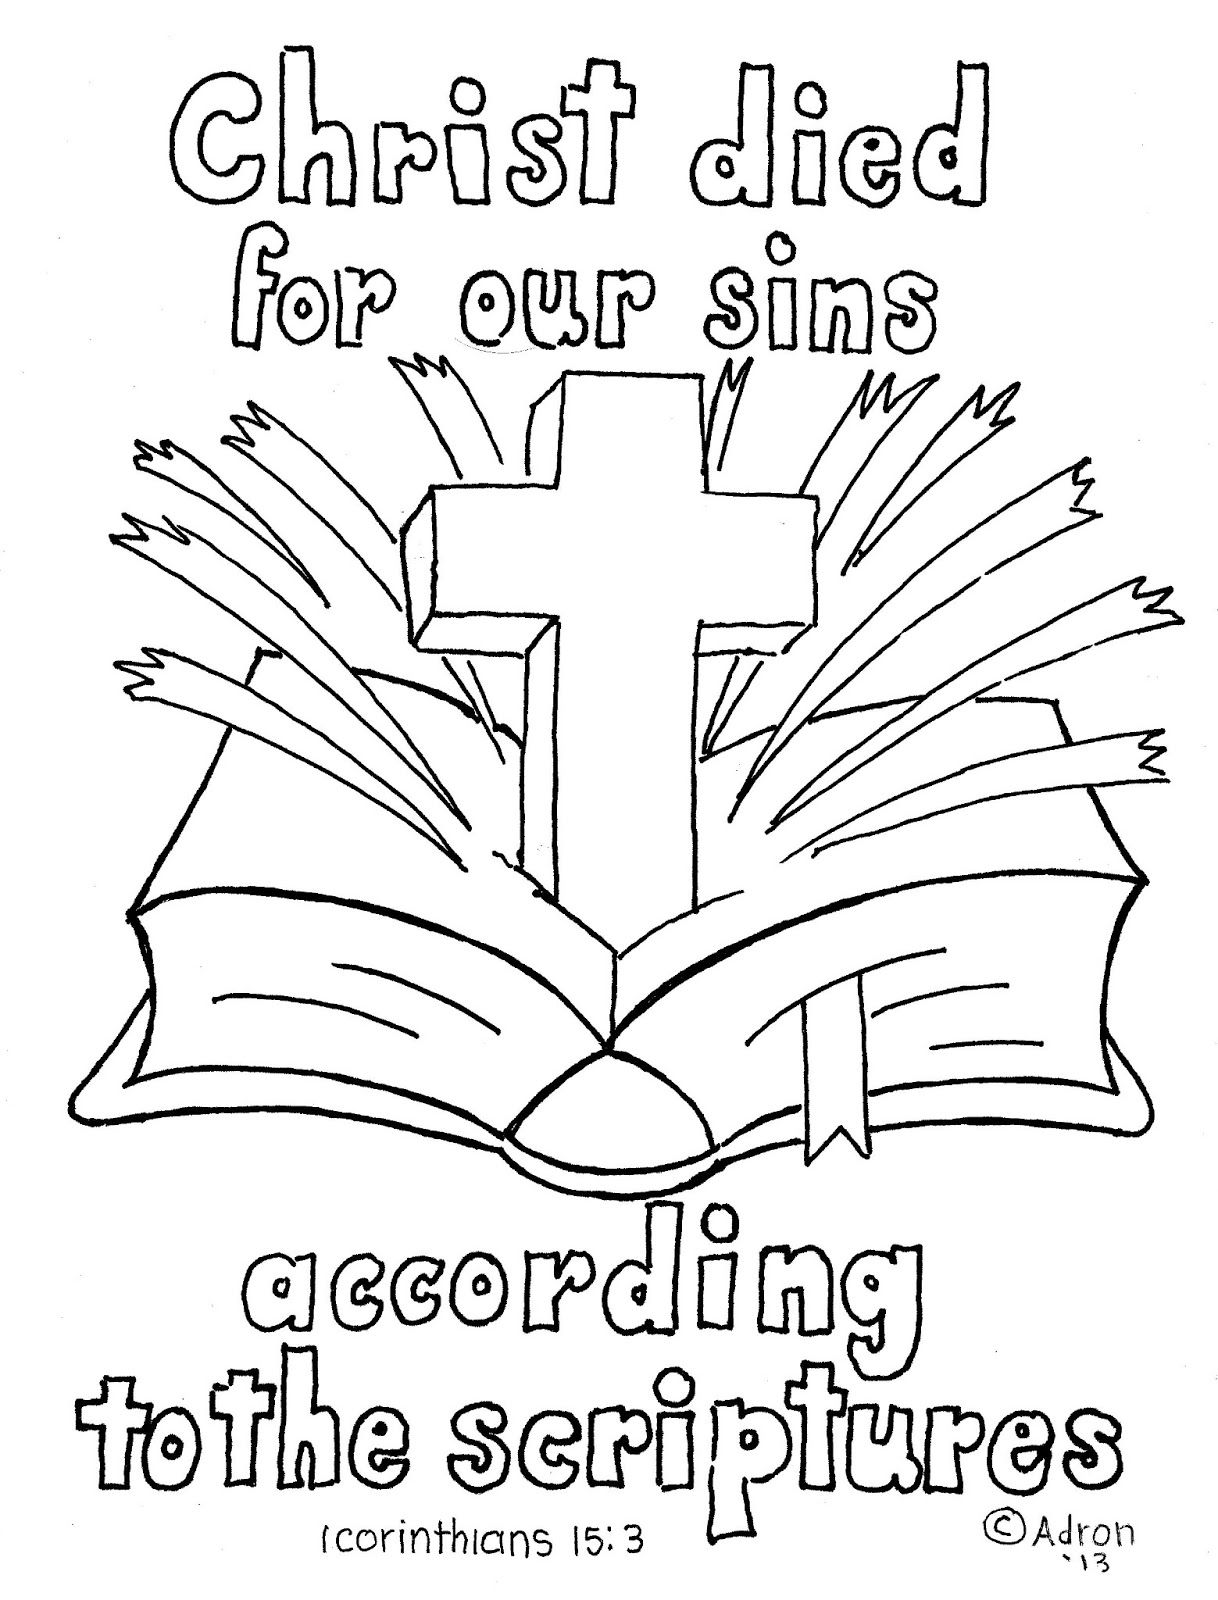 Coloring pages with bible verses - 1 Corinthians 15 3 4 Bible Verse Print And Color Page 1